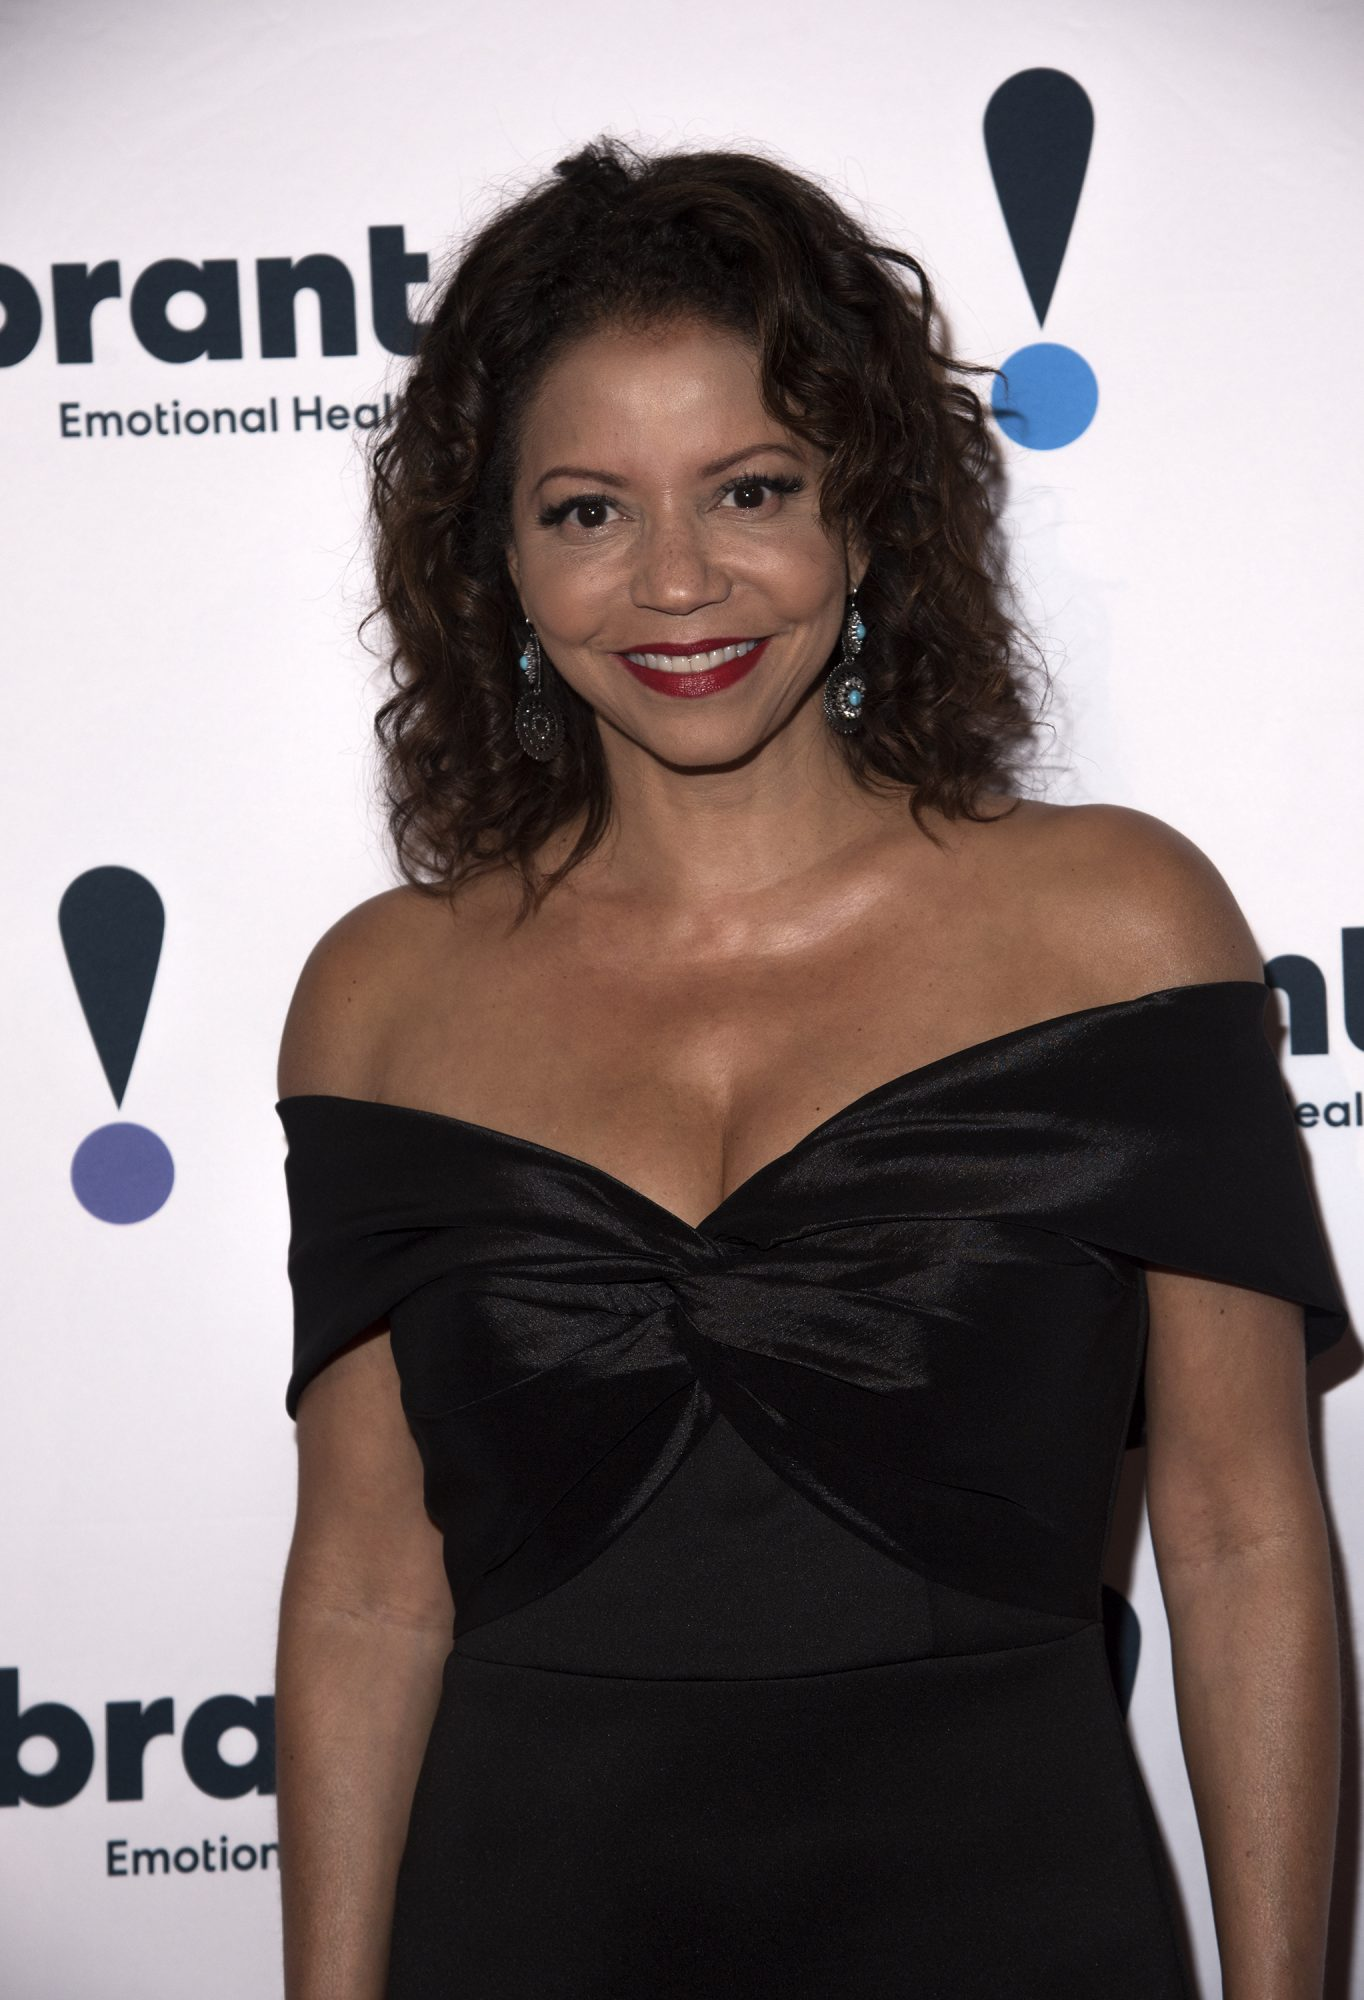 NEW YORK, NY - MAY 20:  Gloria Reuben attends the 27th Annual Gala Share.Connect.Heal hosted by Vibrant Emotional Health at Cipriani 25 Broadway on May 20, 2019 in New York City.  (Photo by Debra L Rothenberg/Getty Images)